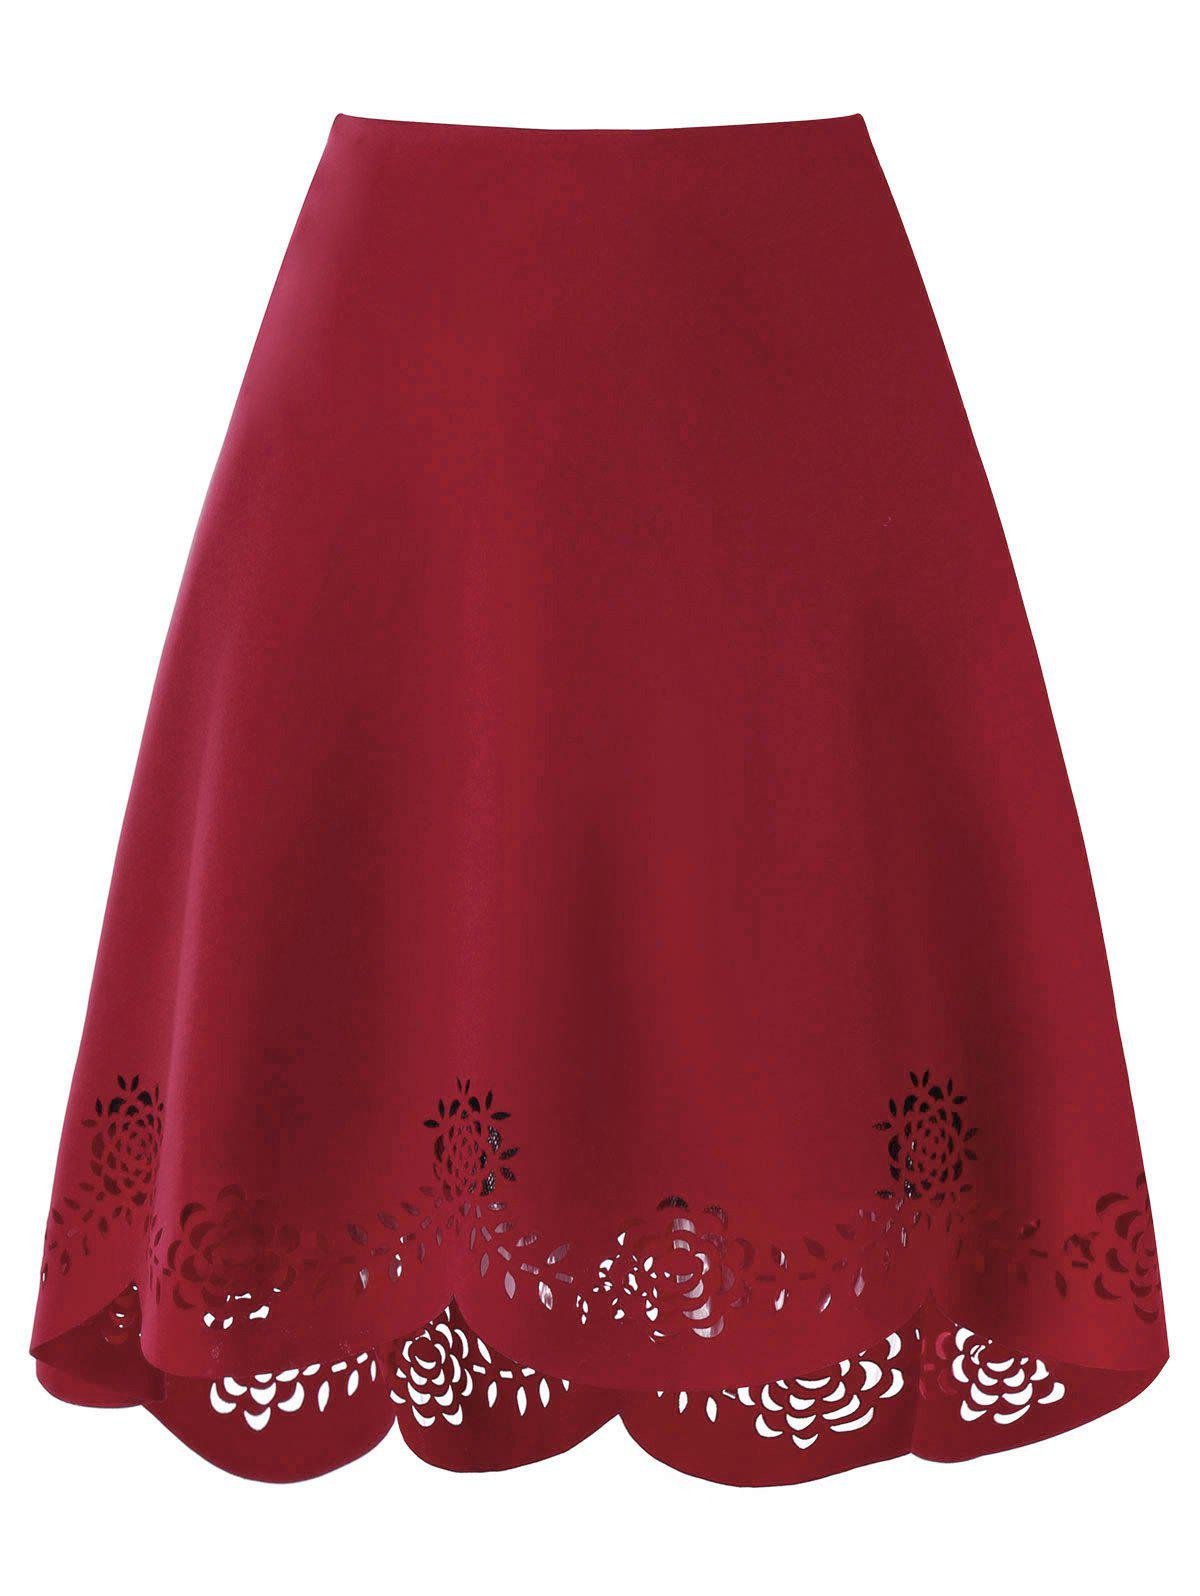 Openwork Scalloped High Low Hem Skirt - WINE RED L